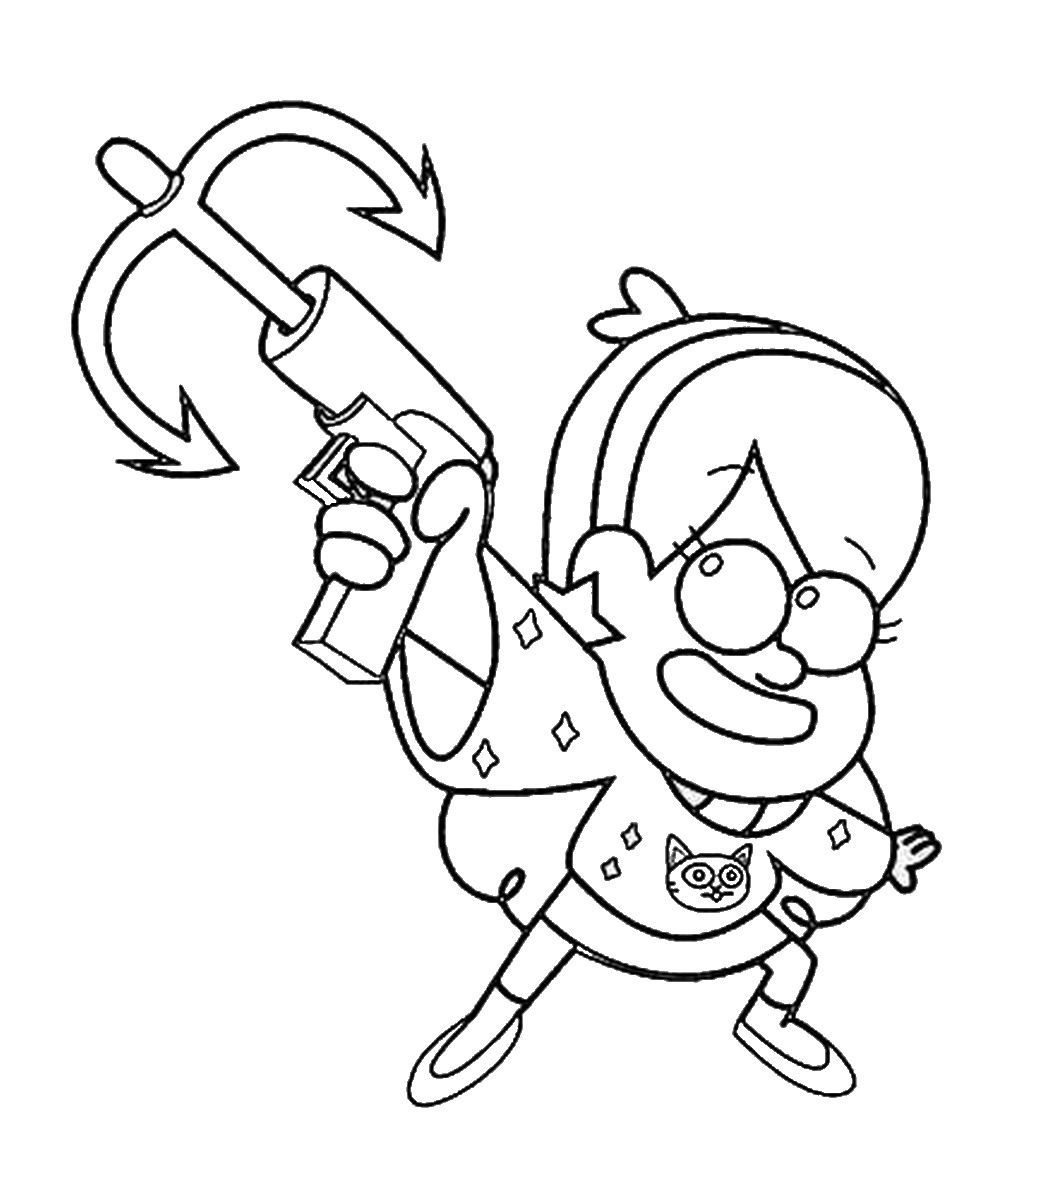 Kolorowanki In 2020 Fall Coloring Pages Coloring Books Coloring Pages